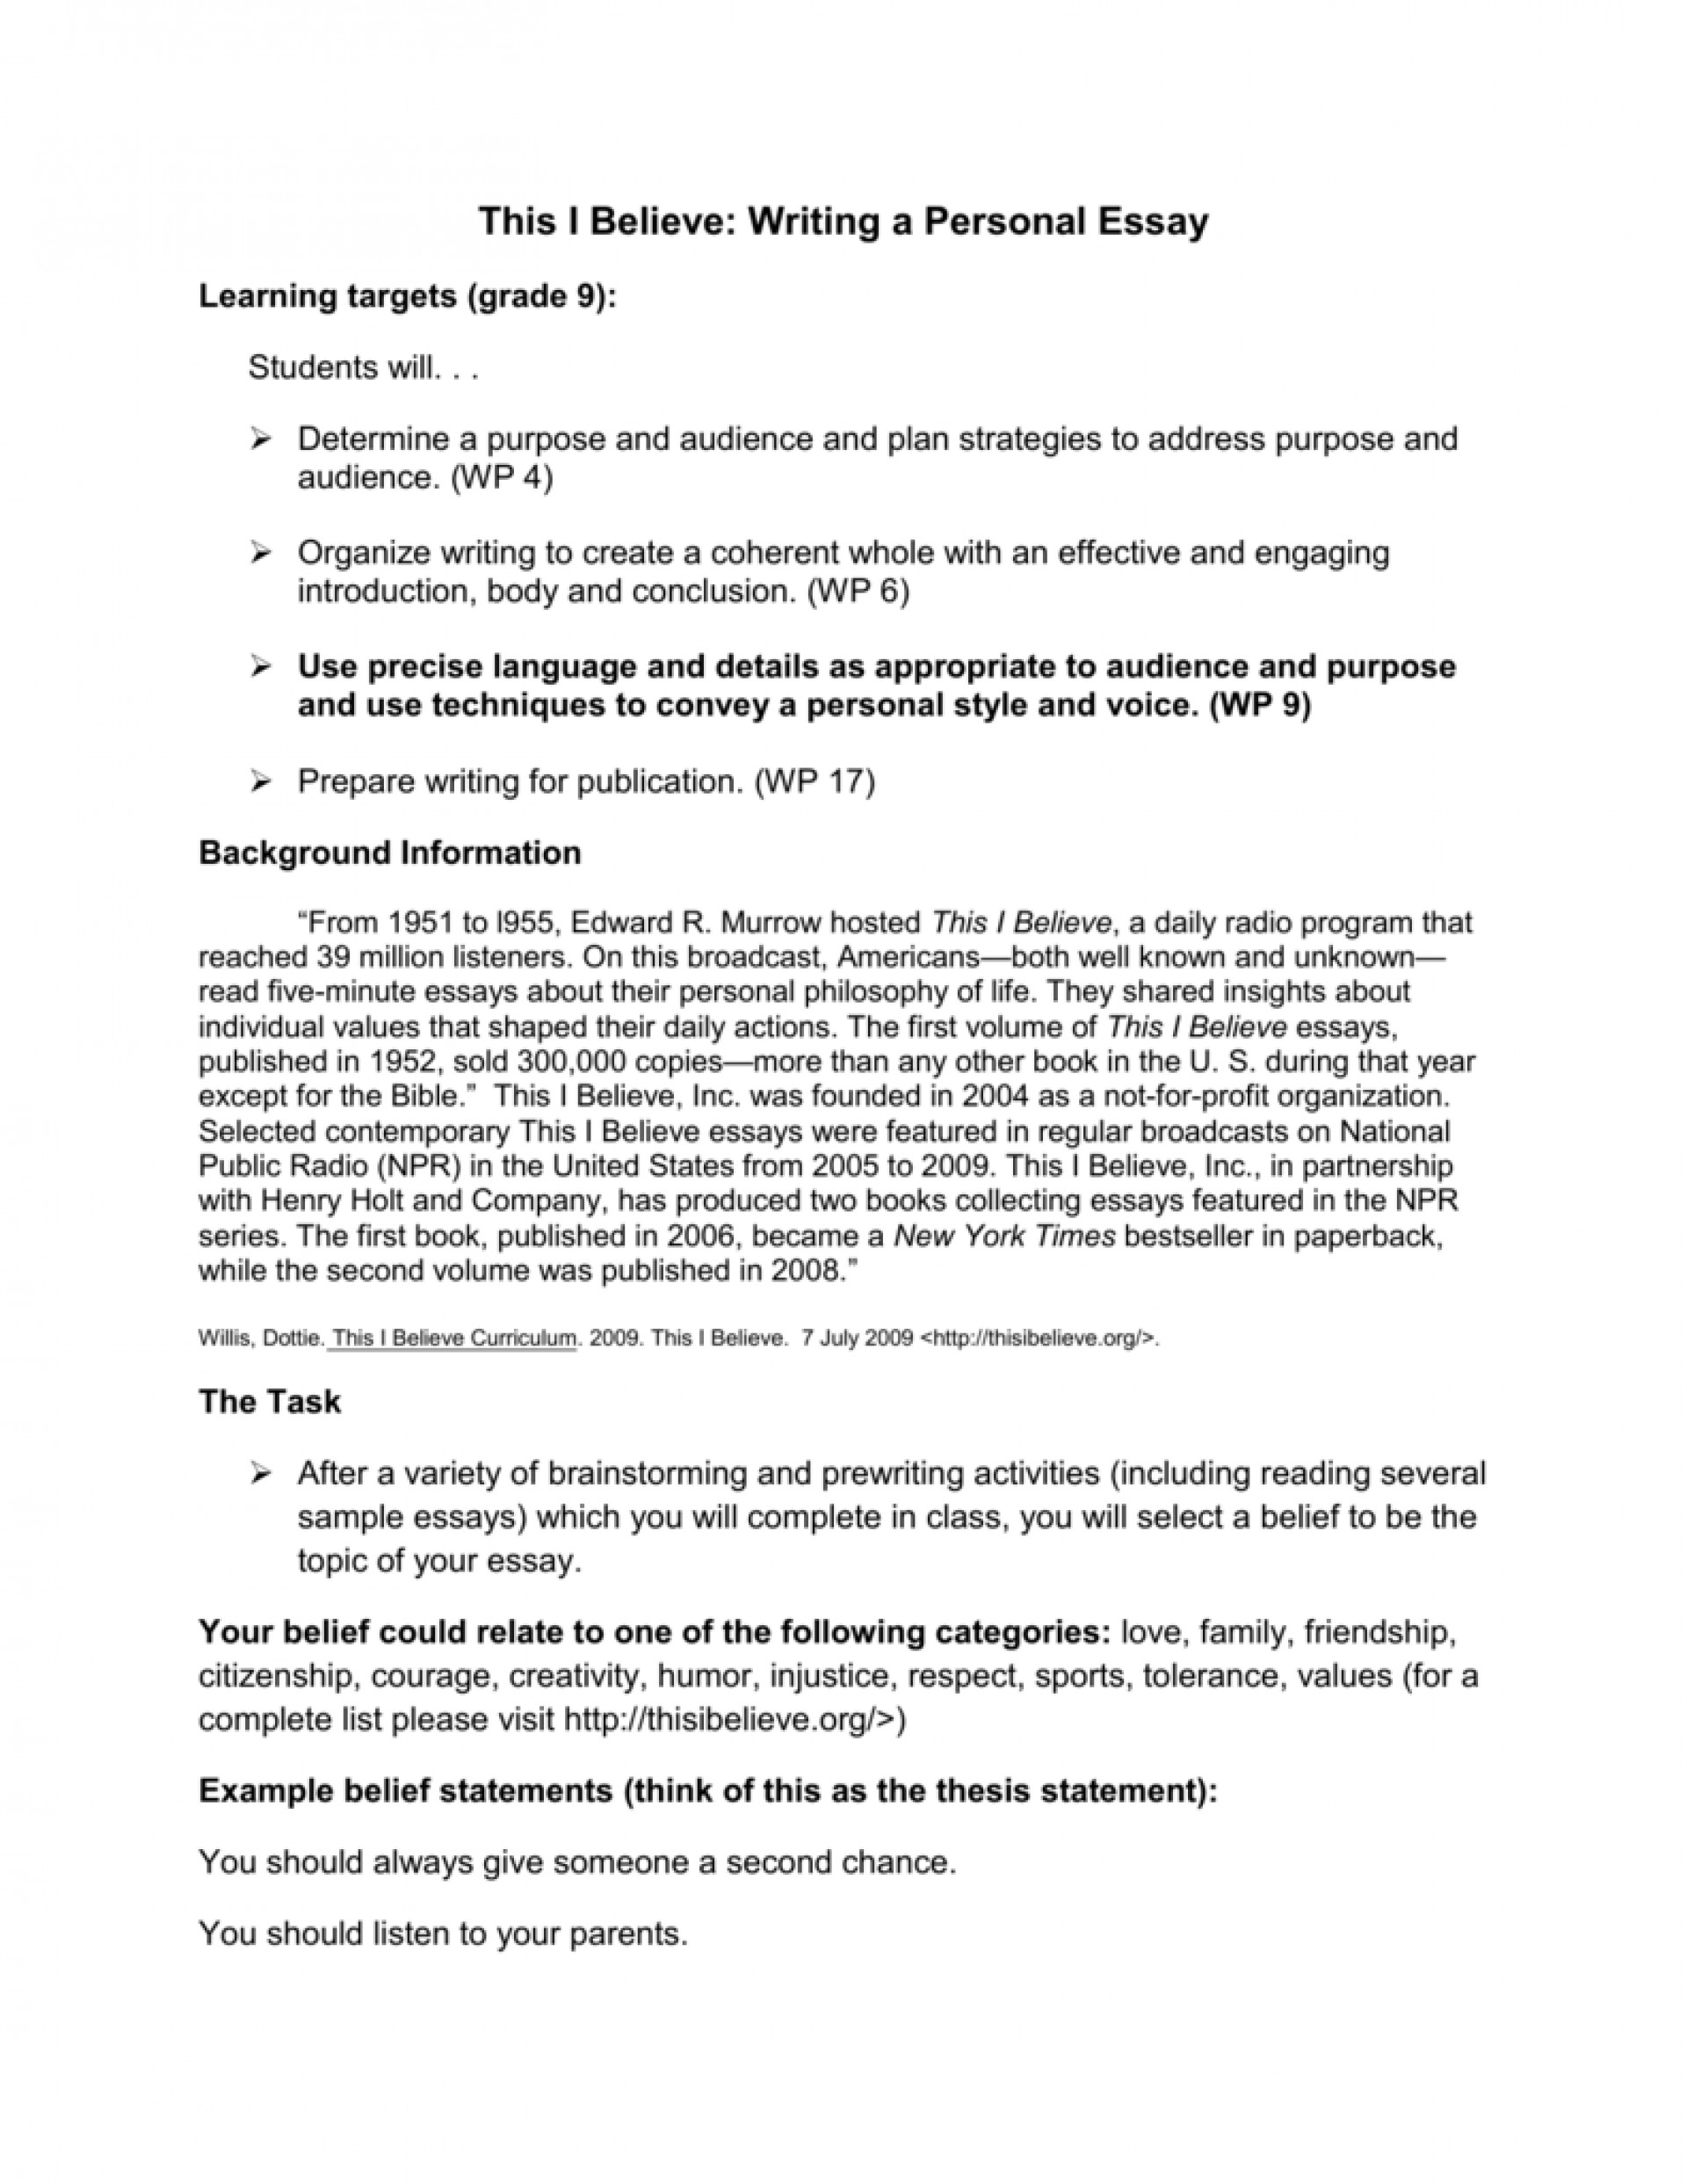 002 This I Believe Essay Examples Example 006750112 1 Stupendous Personal College 1920